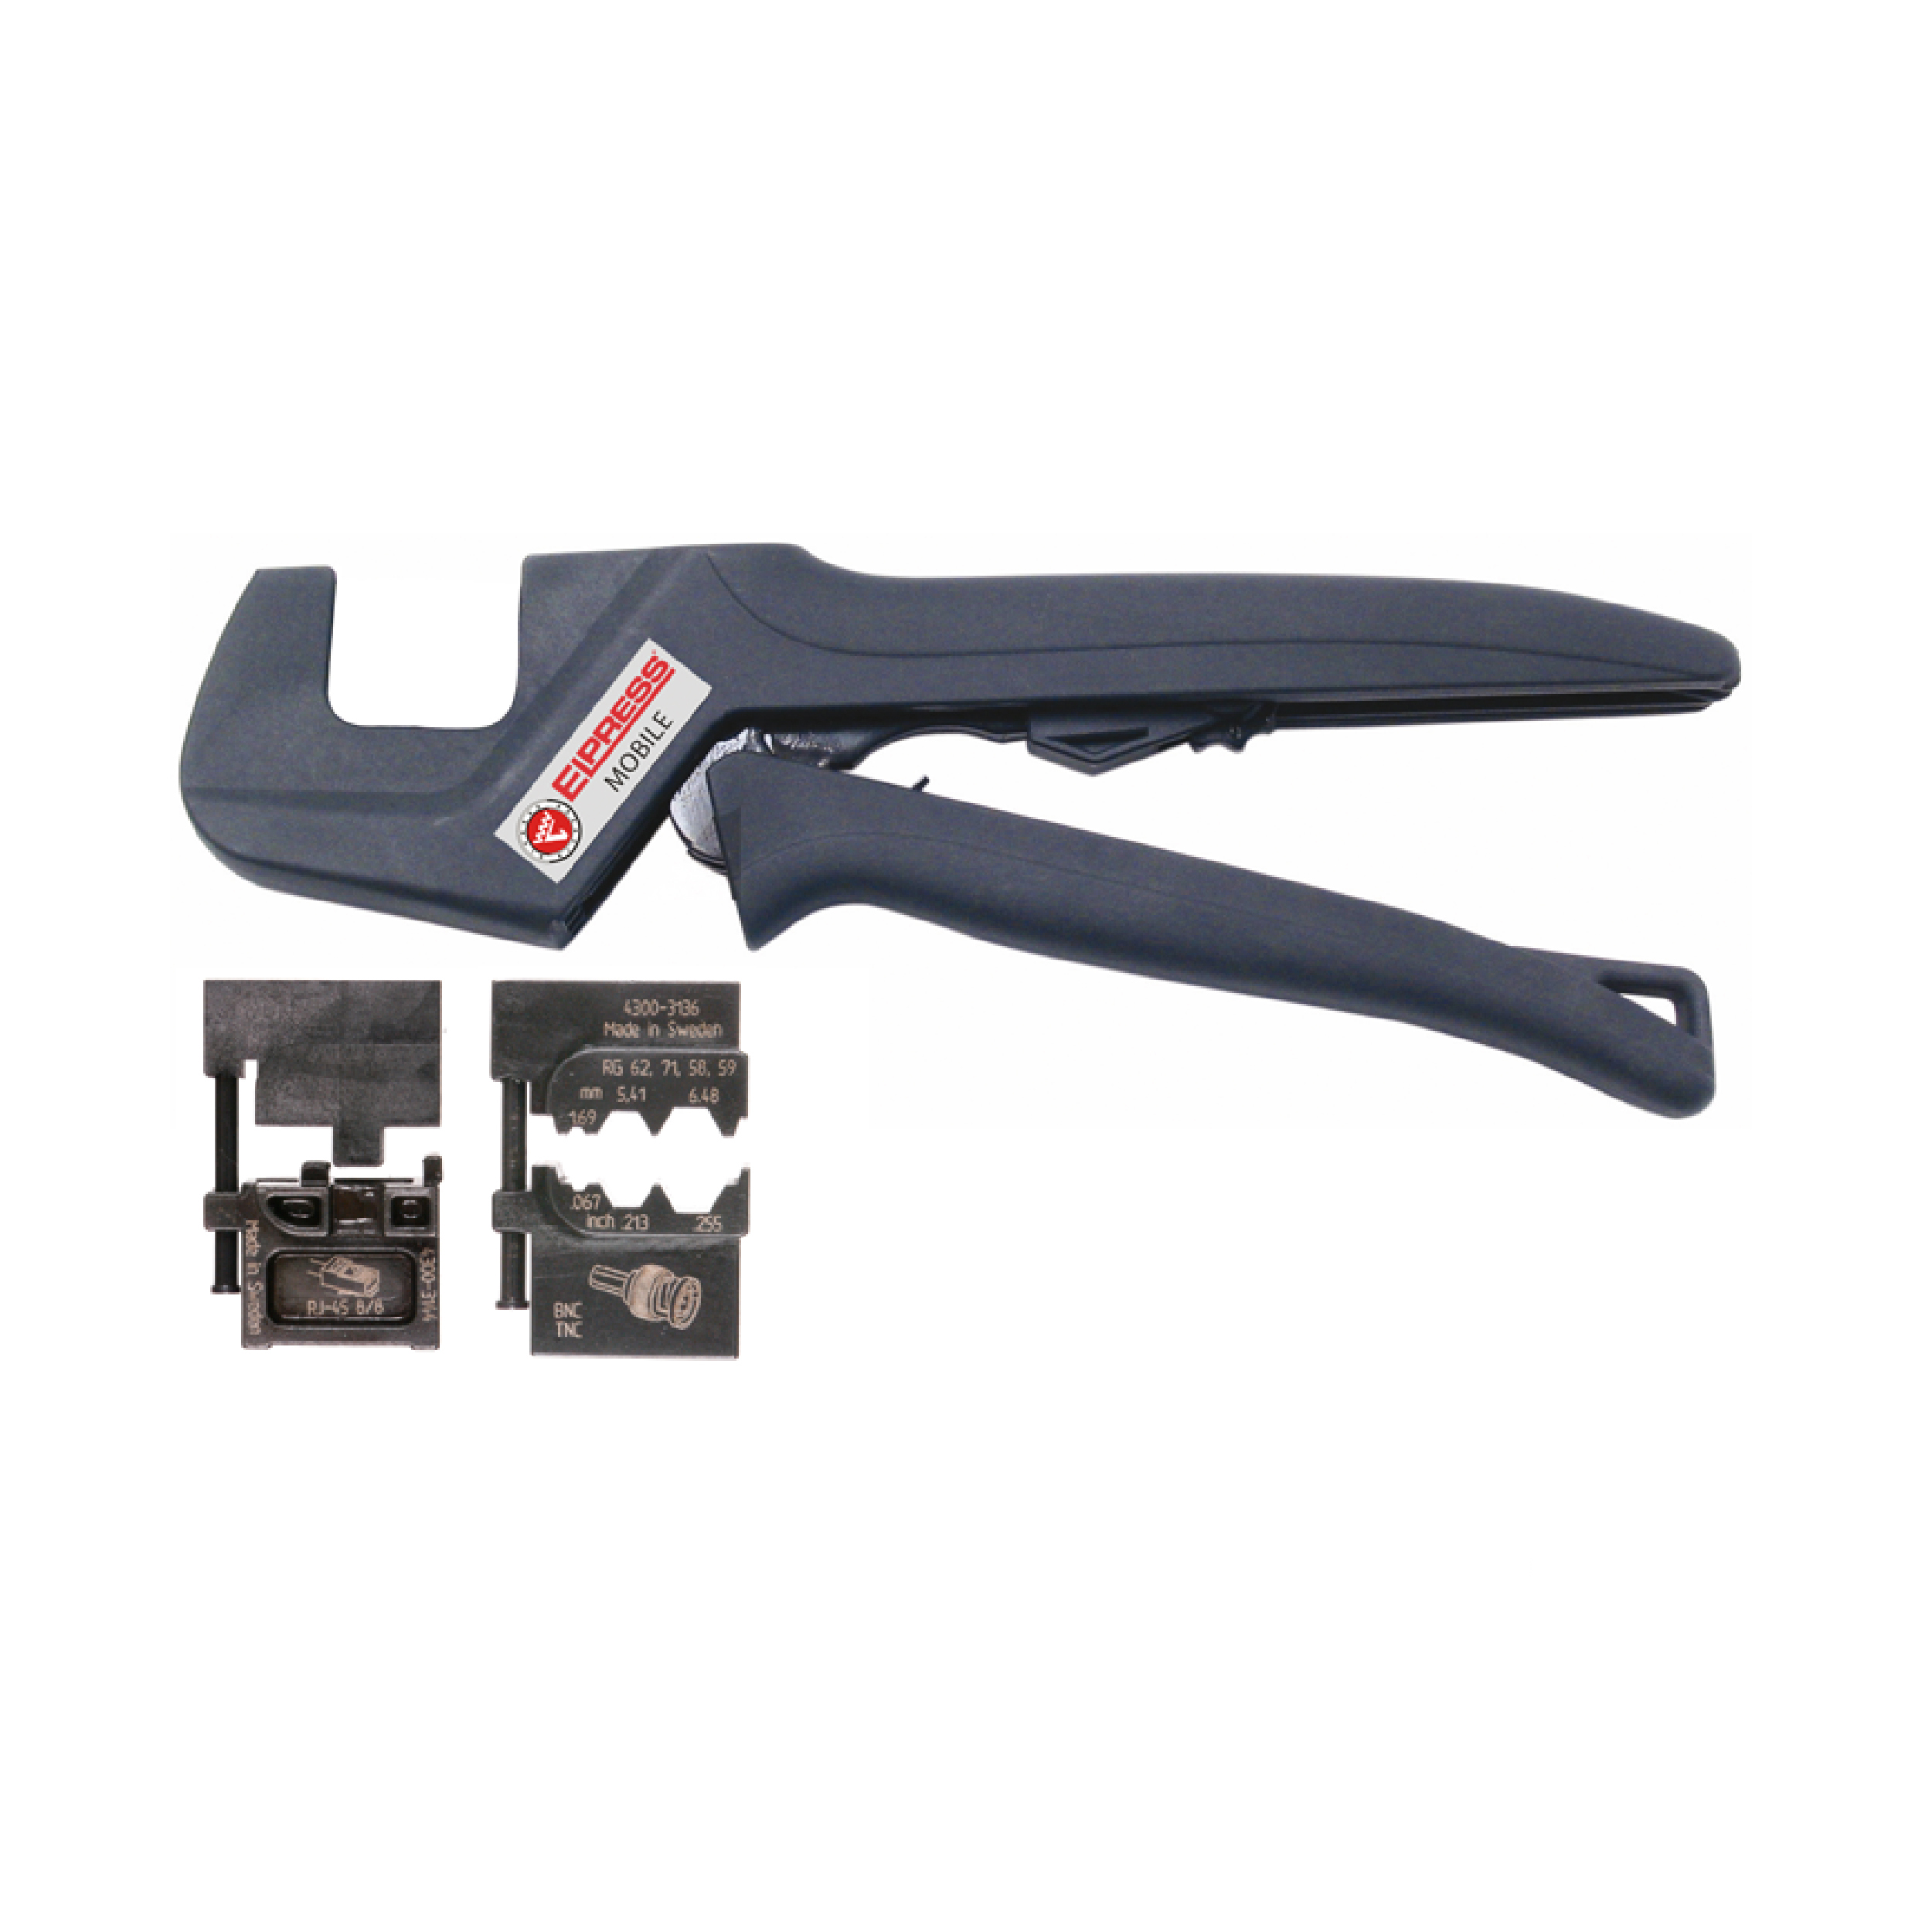 Elpress Mobile DataCom Crimping Tool Kit